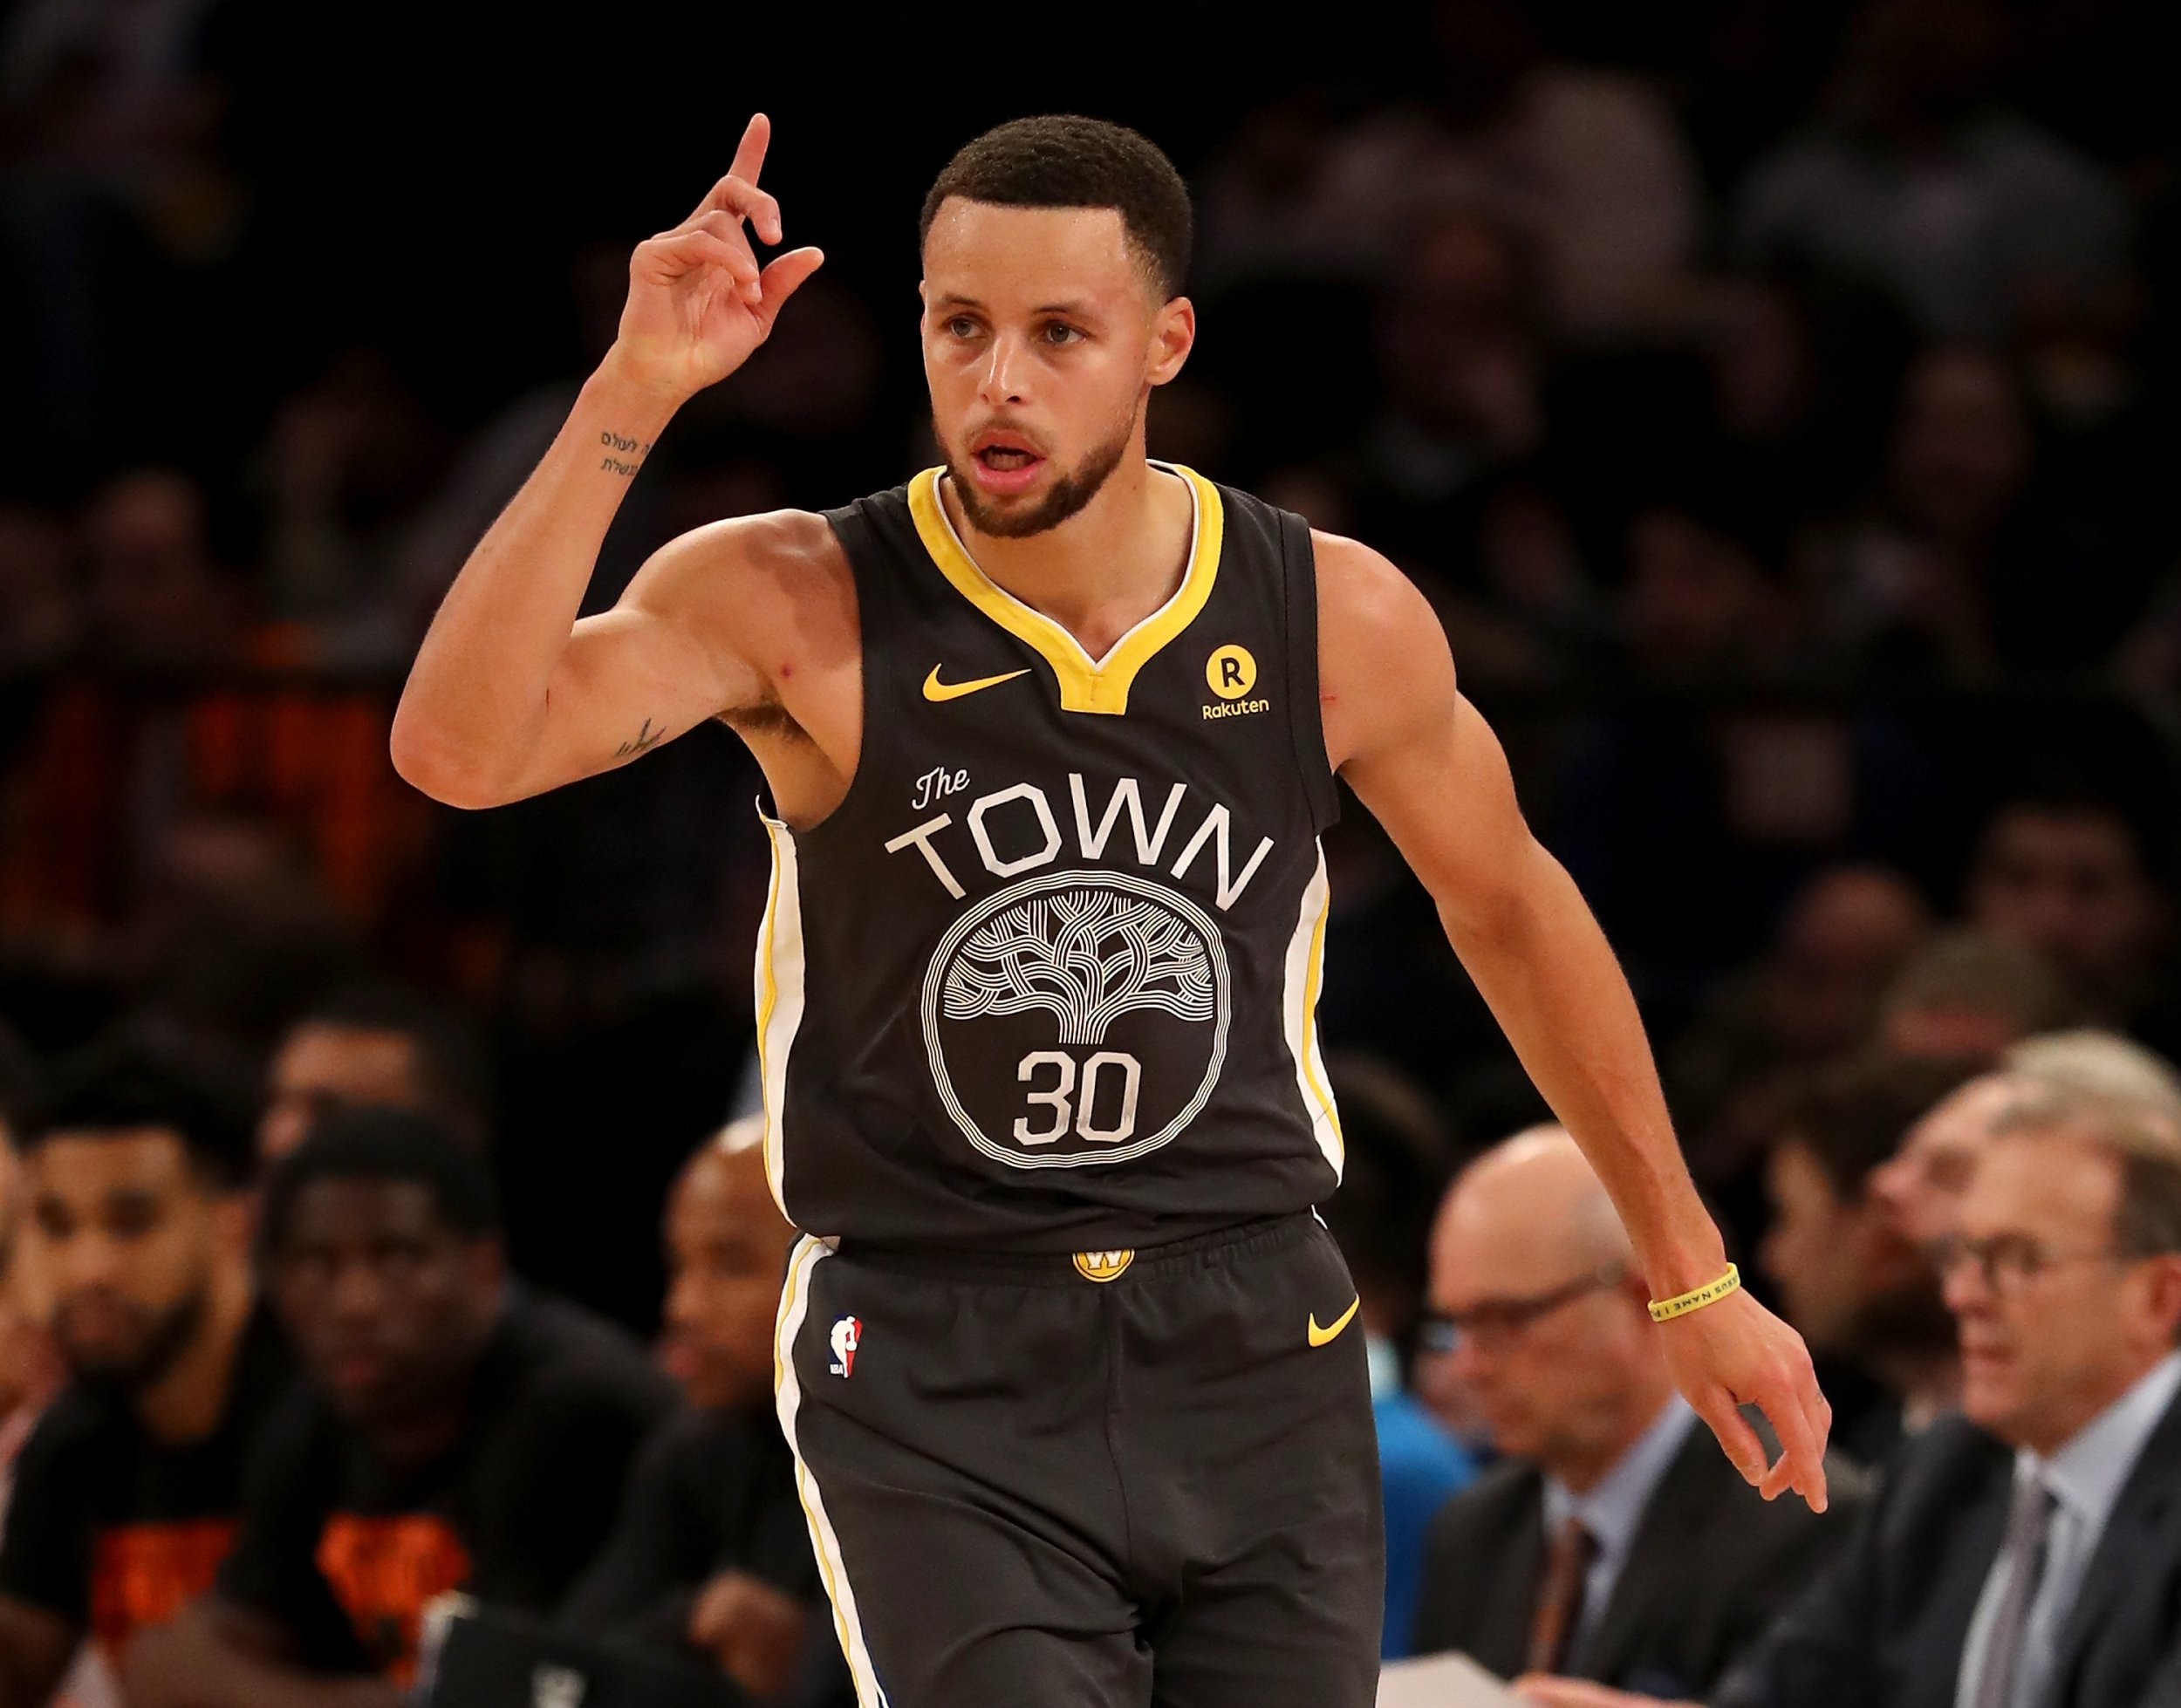 Carolina Panthers Sale  Stephen Curry and Diddy Joining Forces to Buy NFL  Team  dcd5e0dad